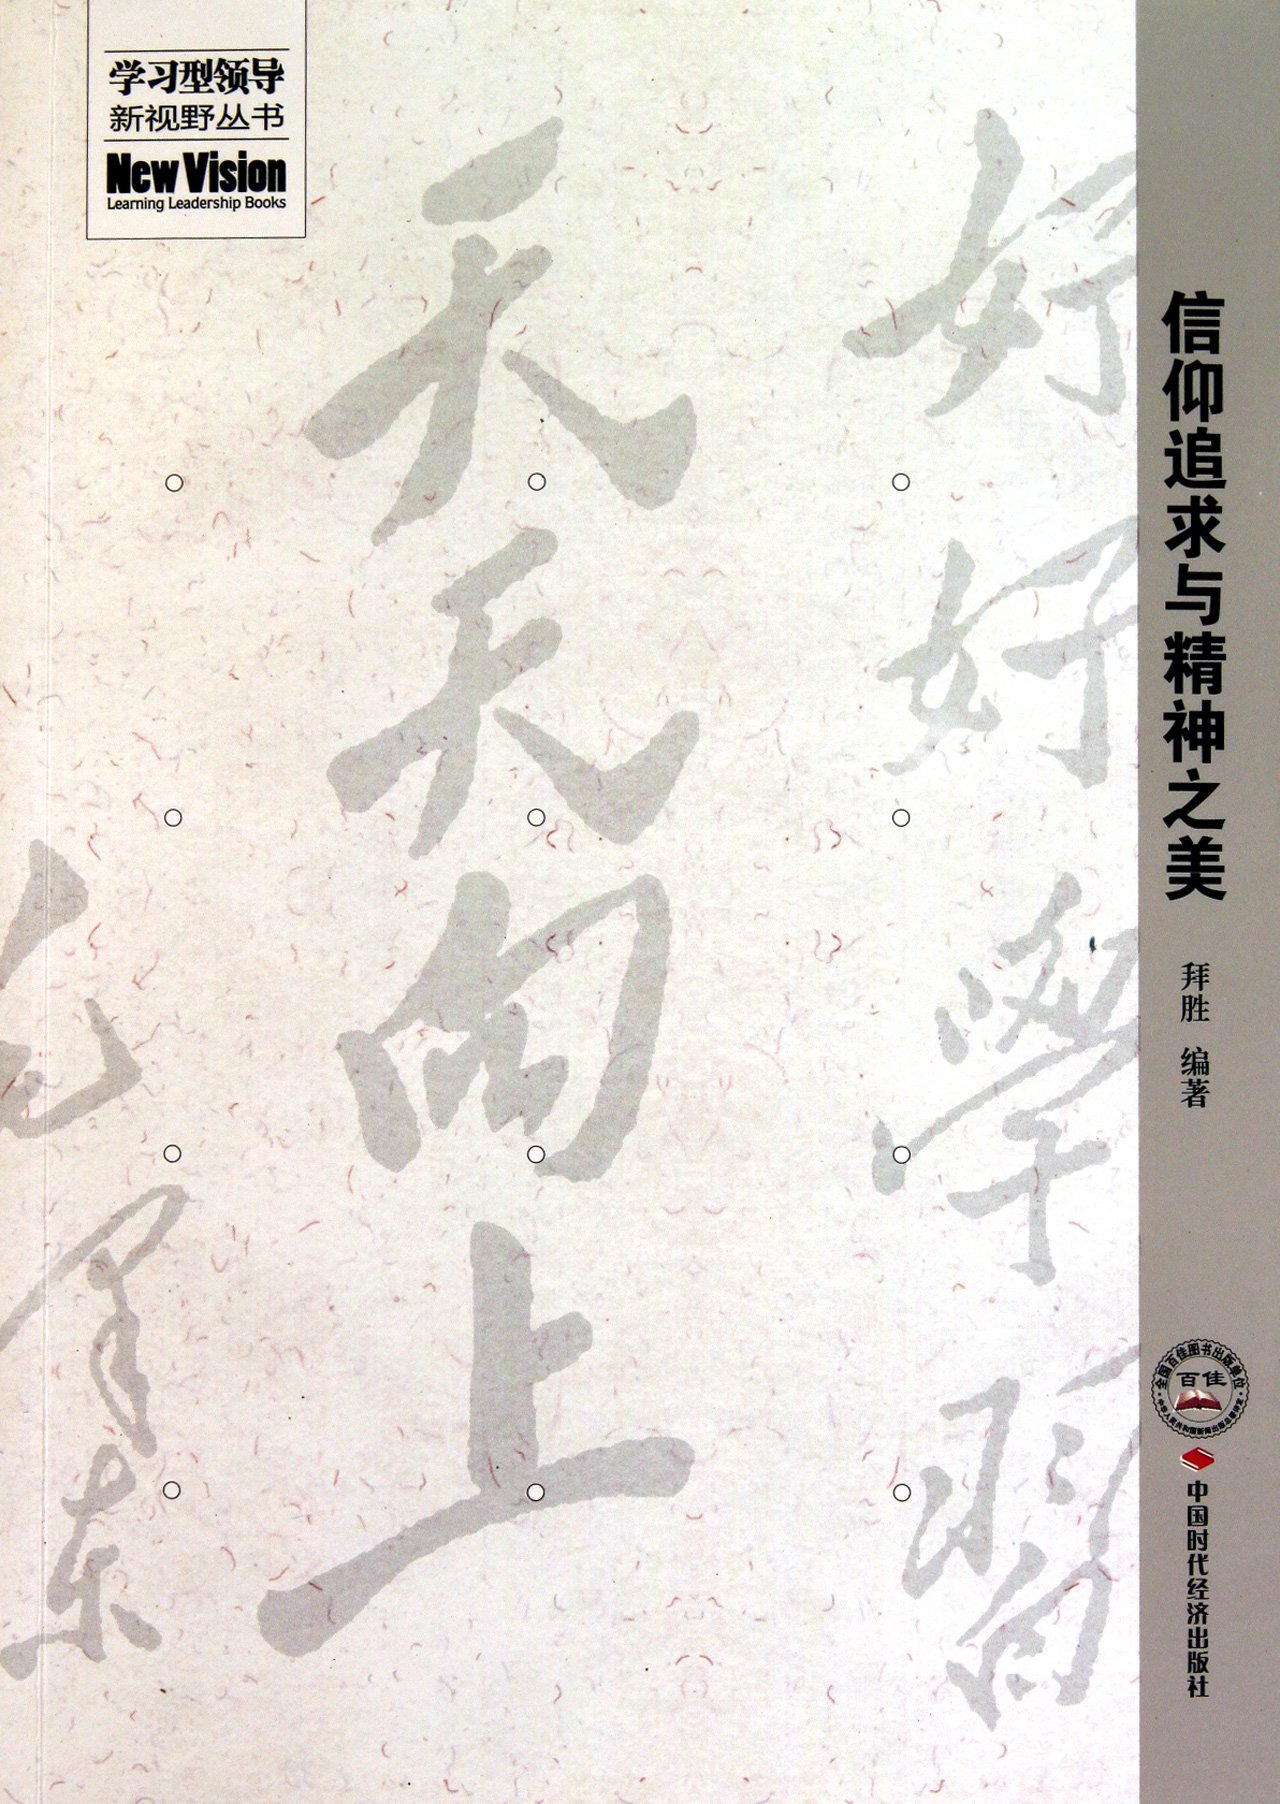 Belief Pursuit and Spirit Beauty (Chinese Edition) PDF